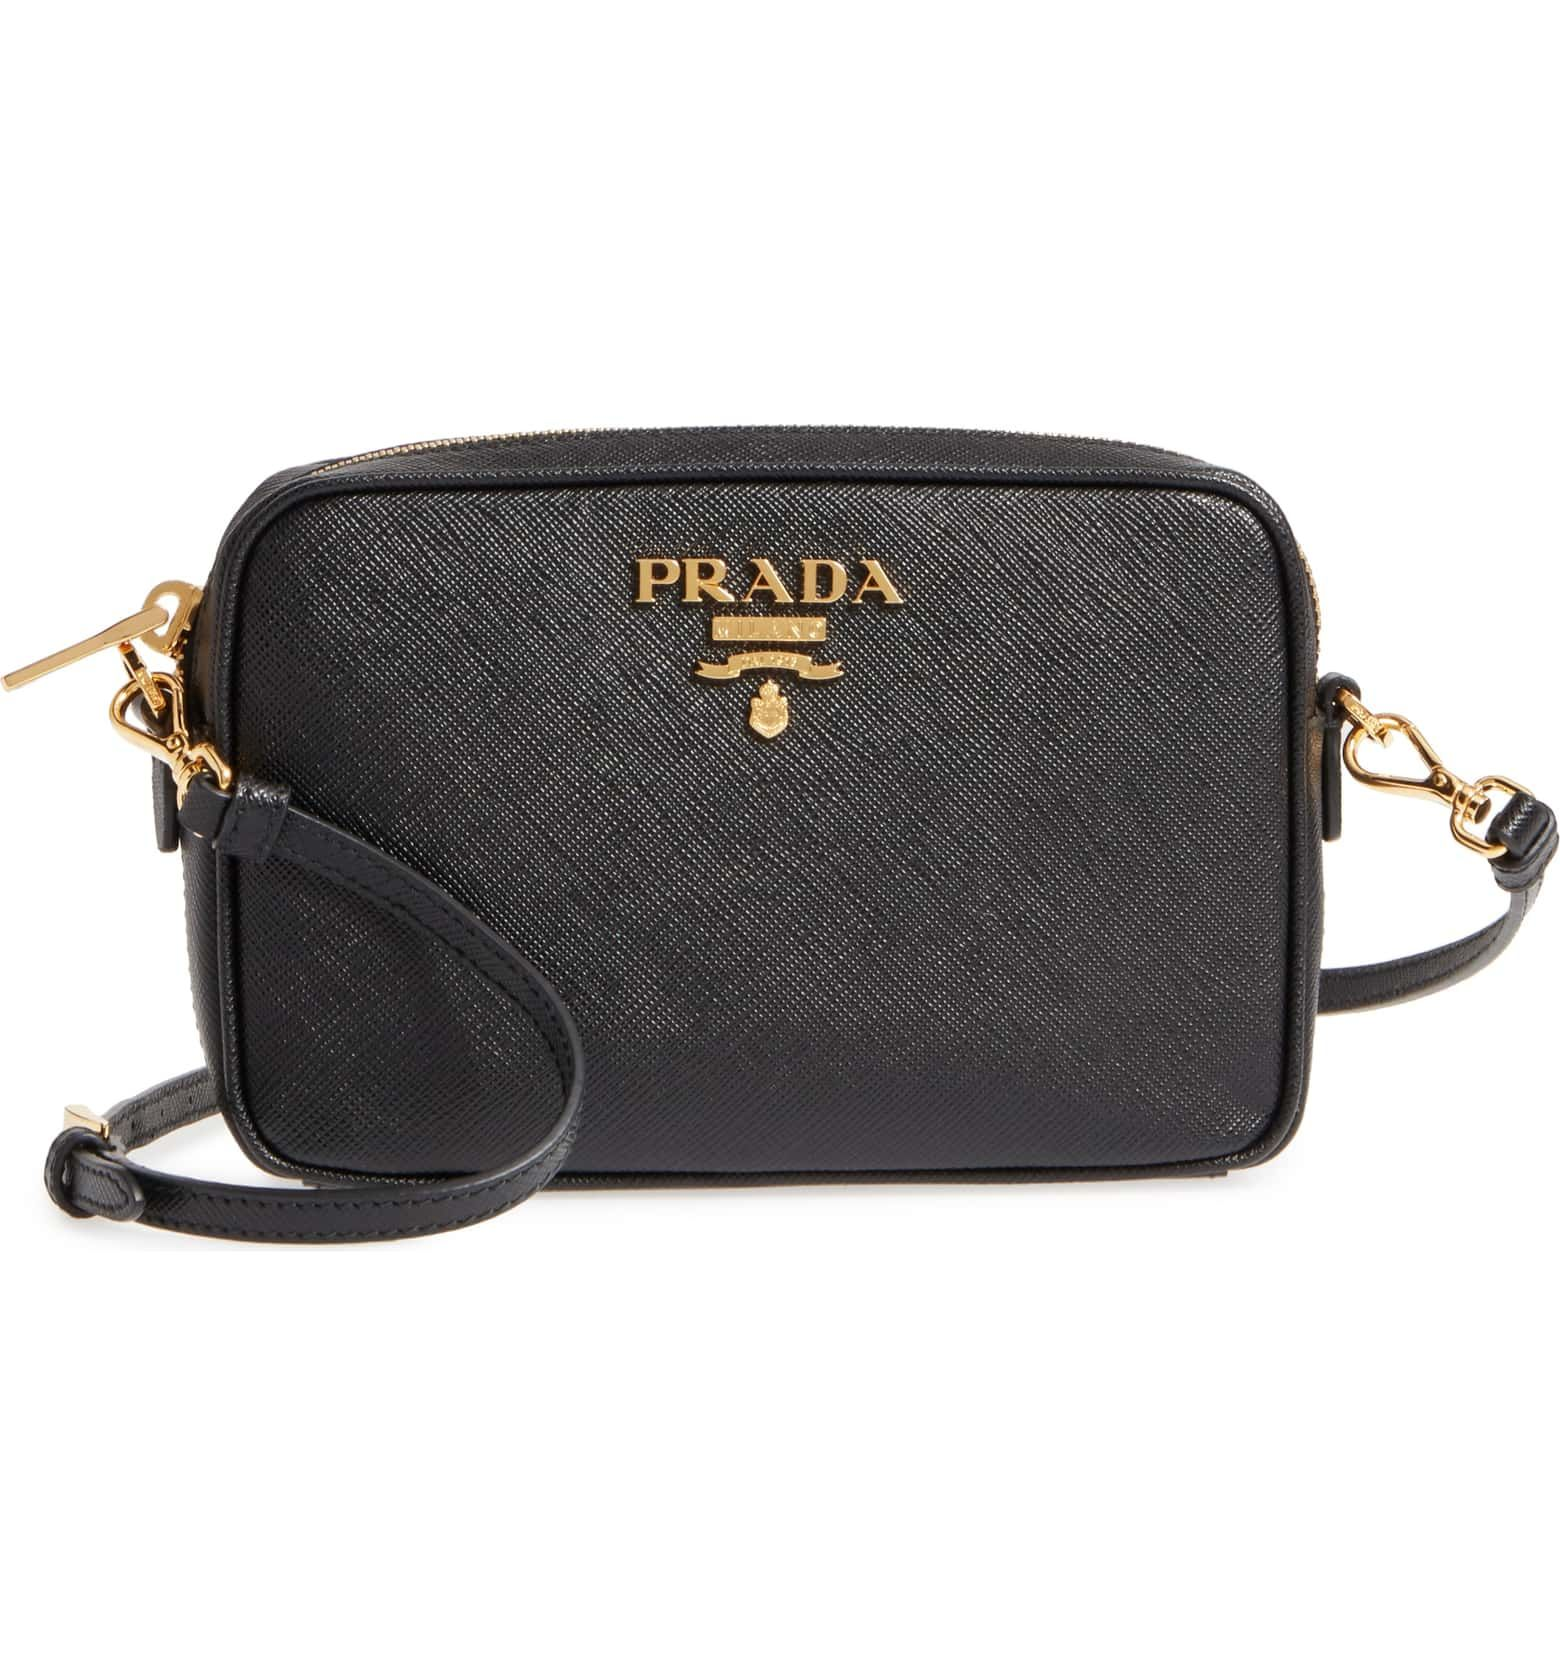 f27d21cd290f ... 50% off saffiano leather camera bag main color nero leather camera bag  prada saffiano 92691